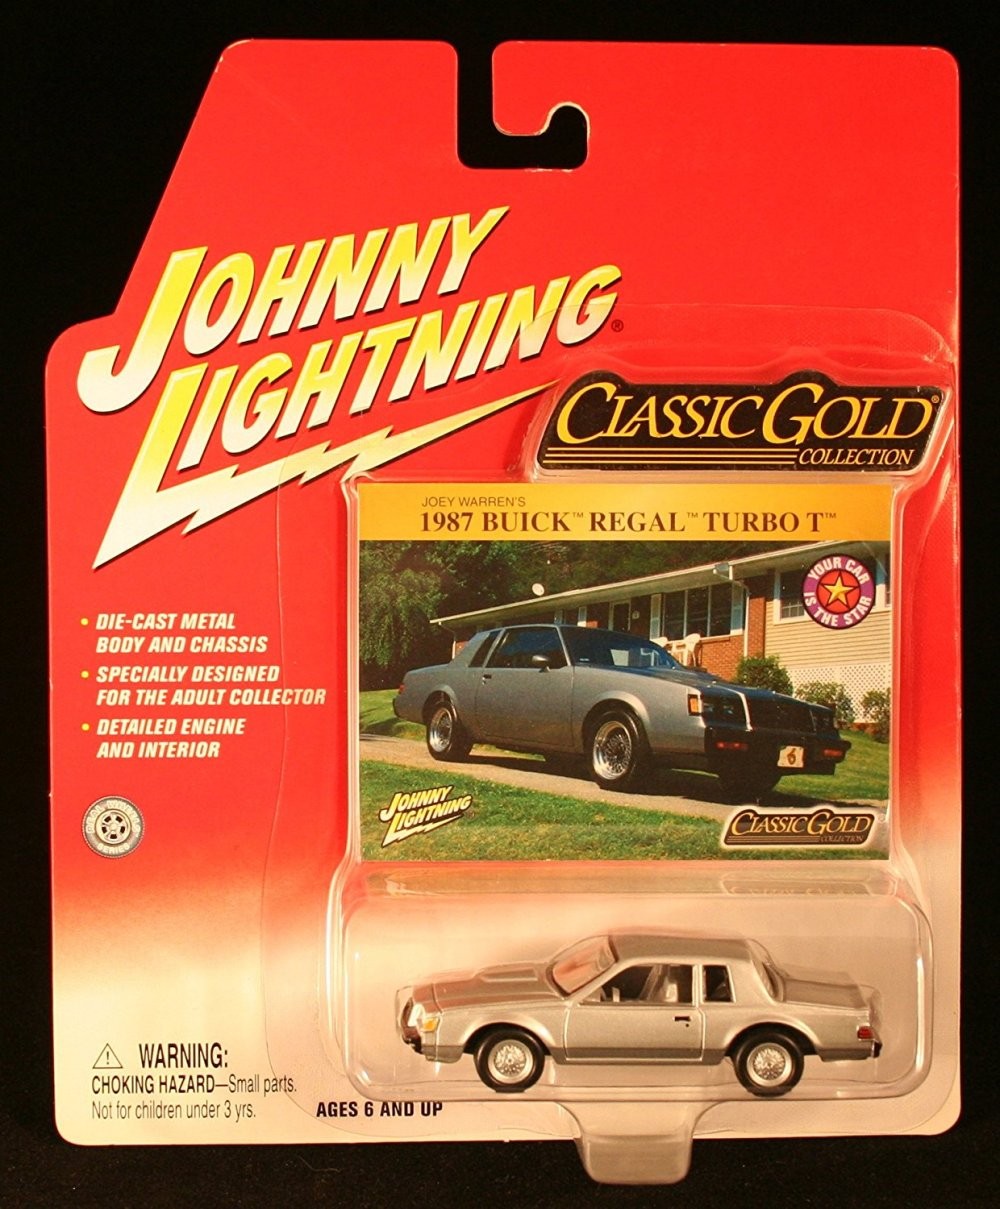 medium resolution of johnny lightning classic gold collection 1987 buick regal turbo t